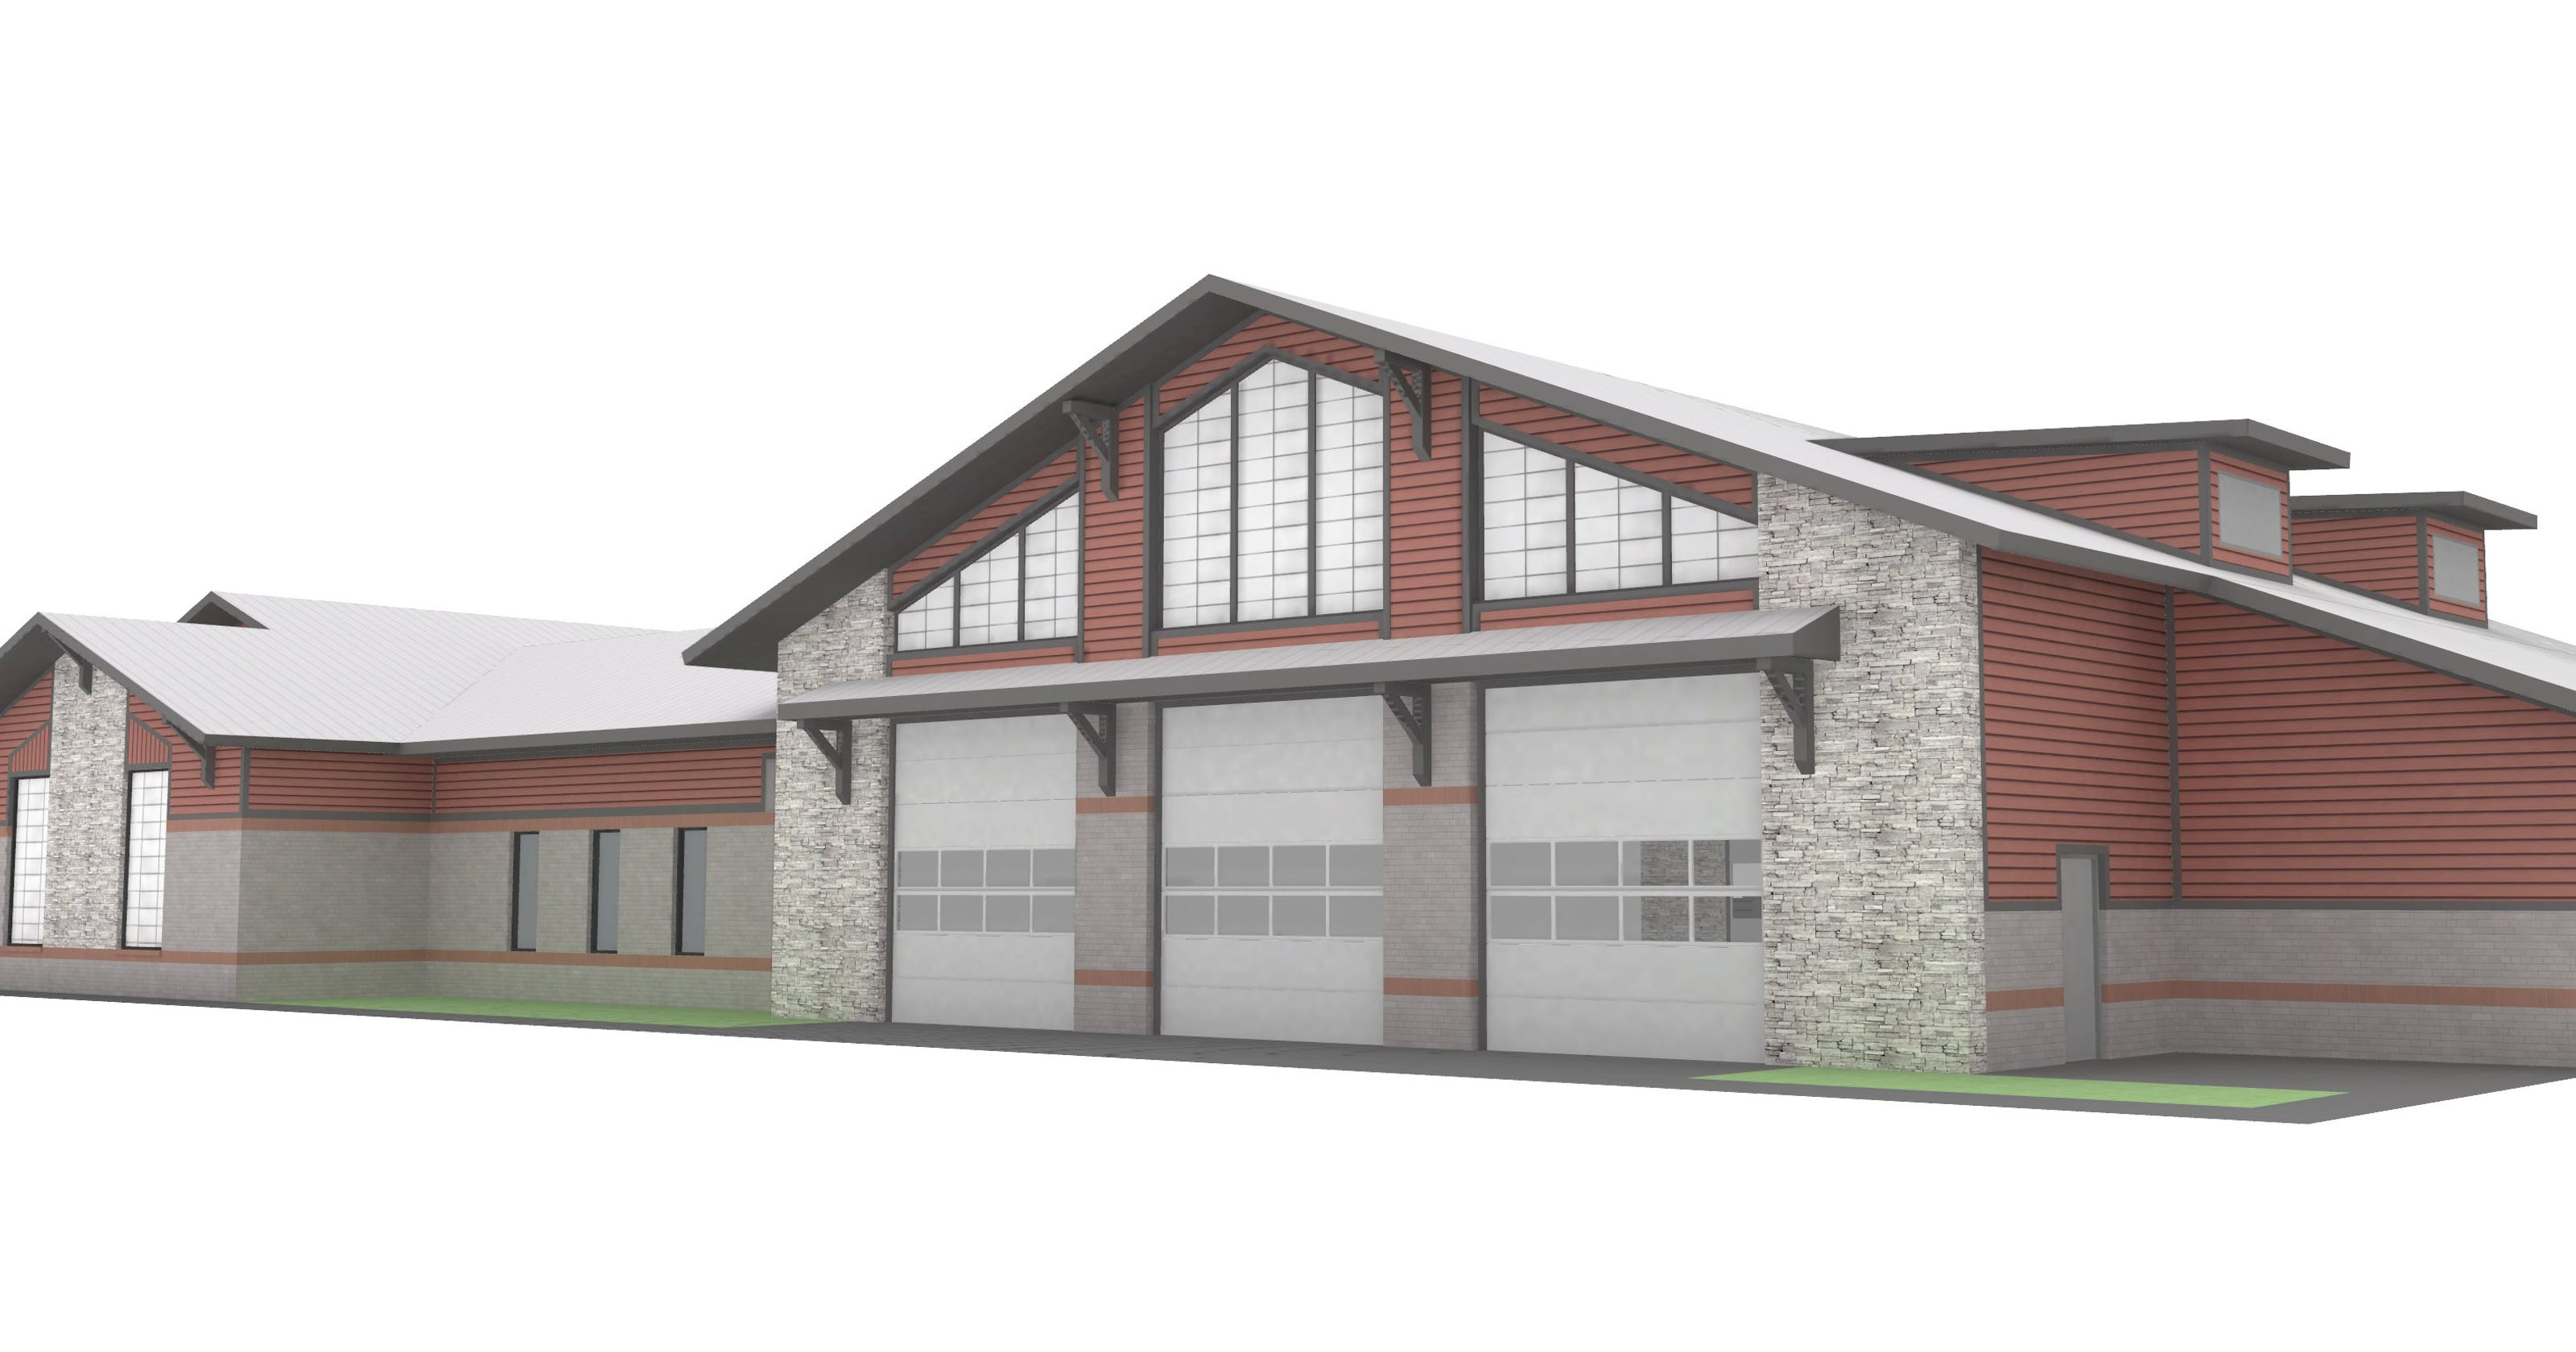 Murfreesboro's Blackman community to open fire station in July 2019